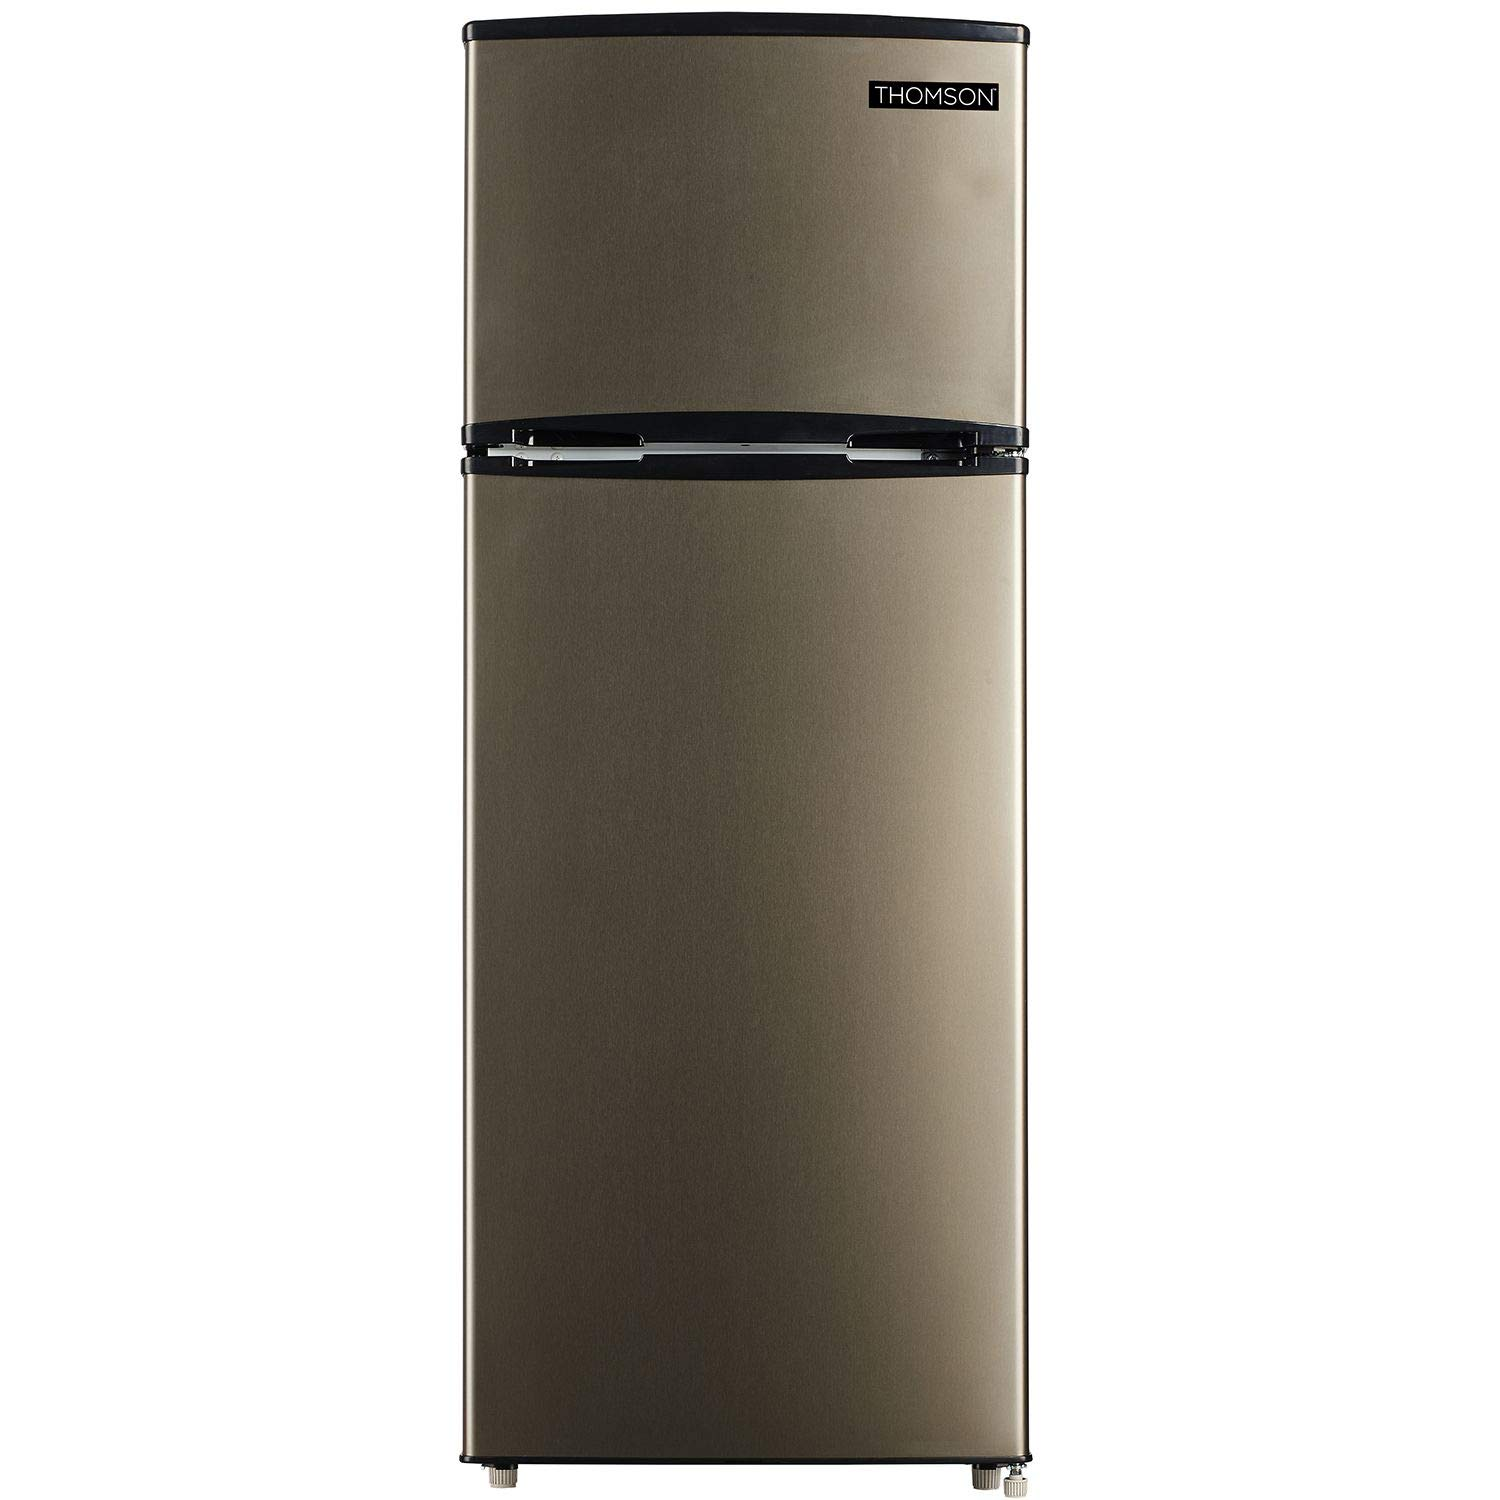 Thomson 7.5 cu. ft. Top-Freezer Refrigerator